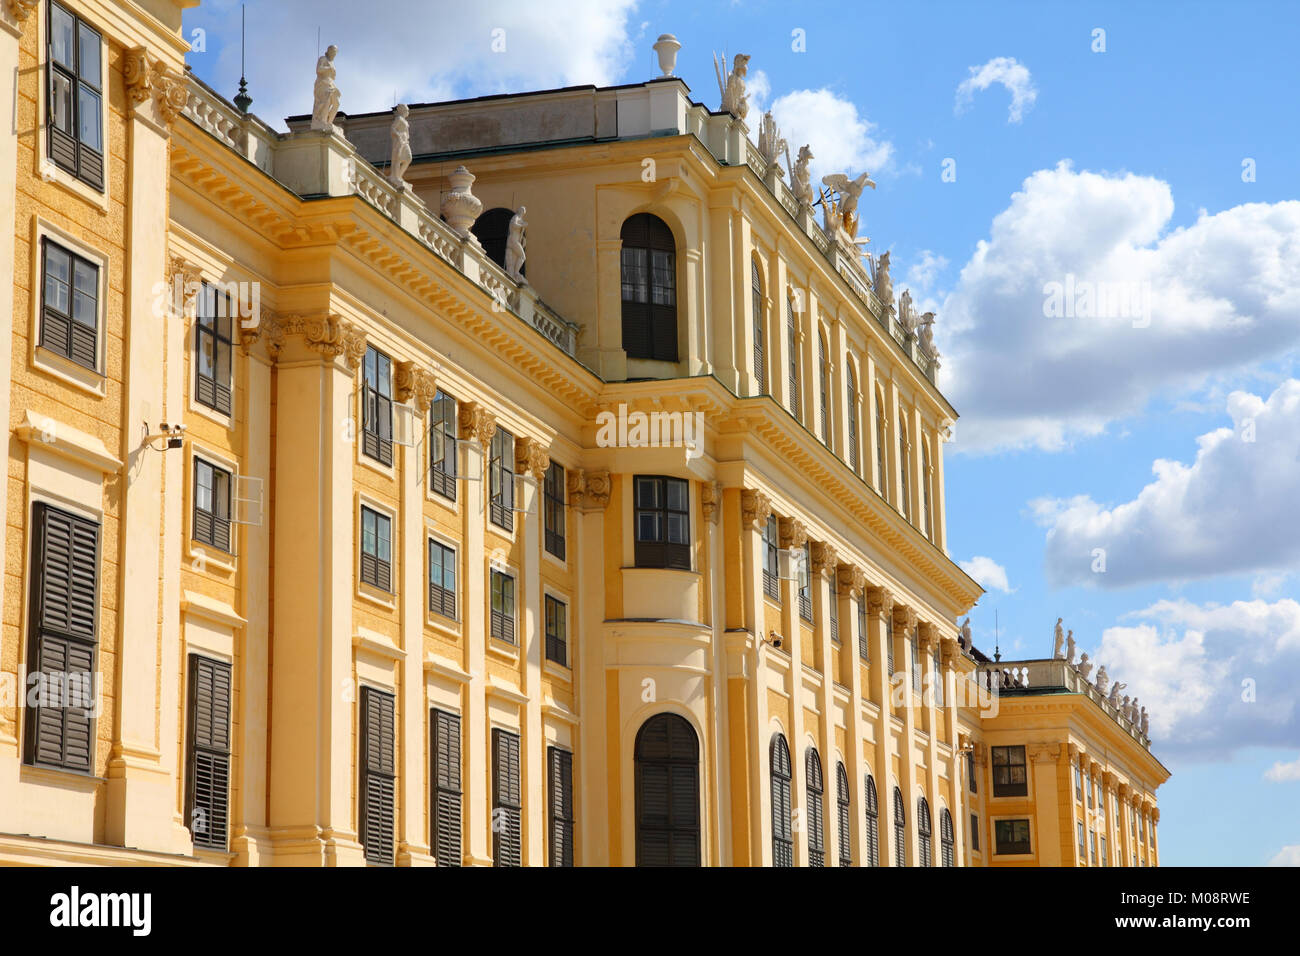 Vienna, Austria - Schoenbrunn Palace, a UNESCO World Heritage Site. - Stock Image